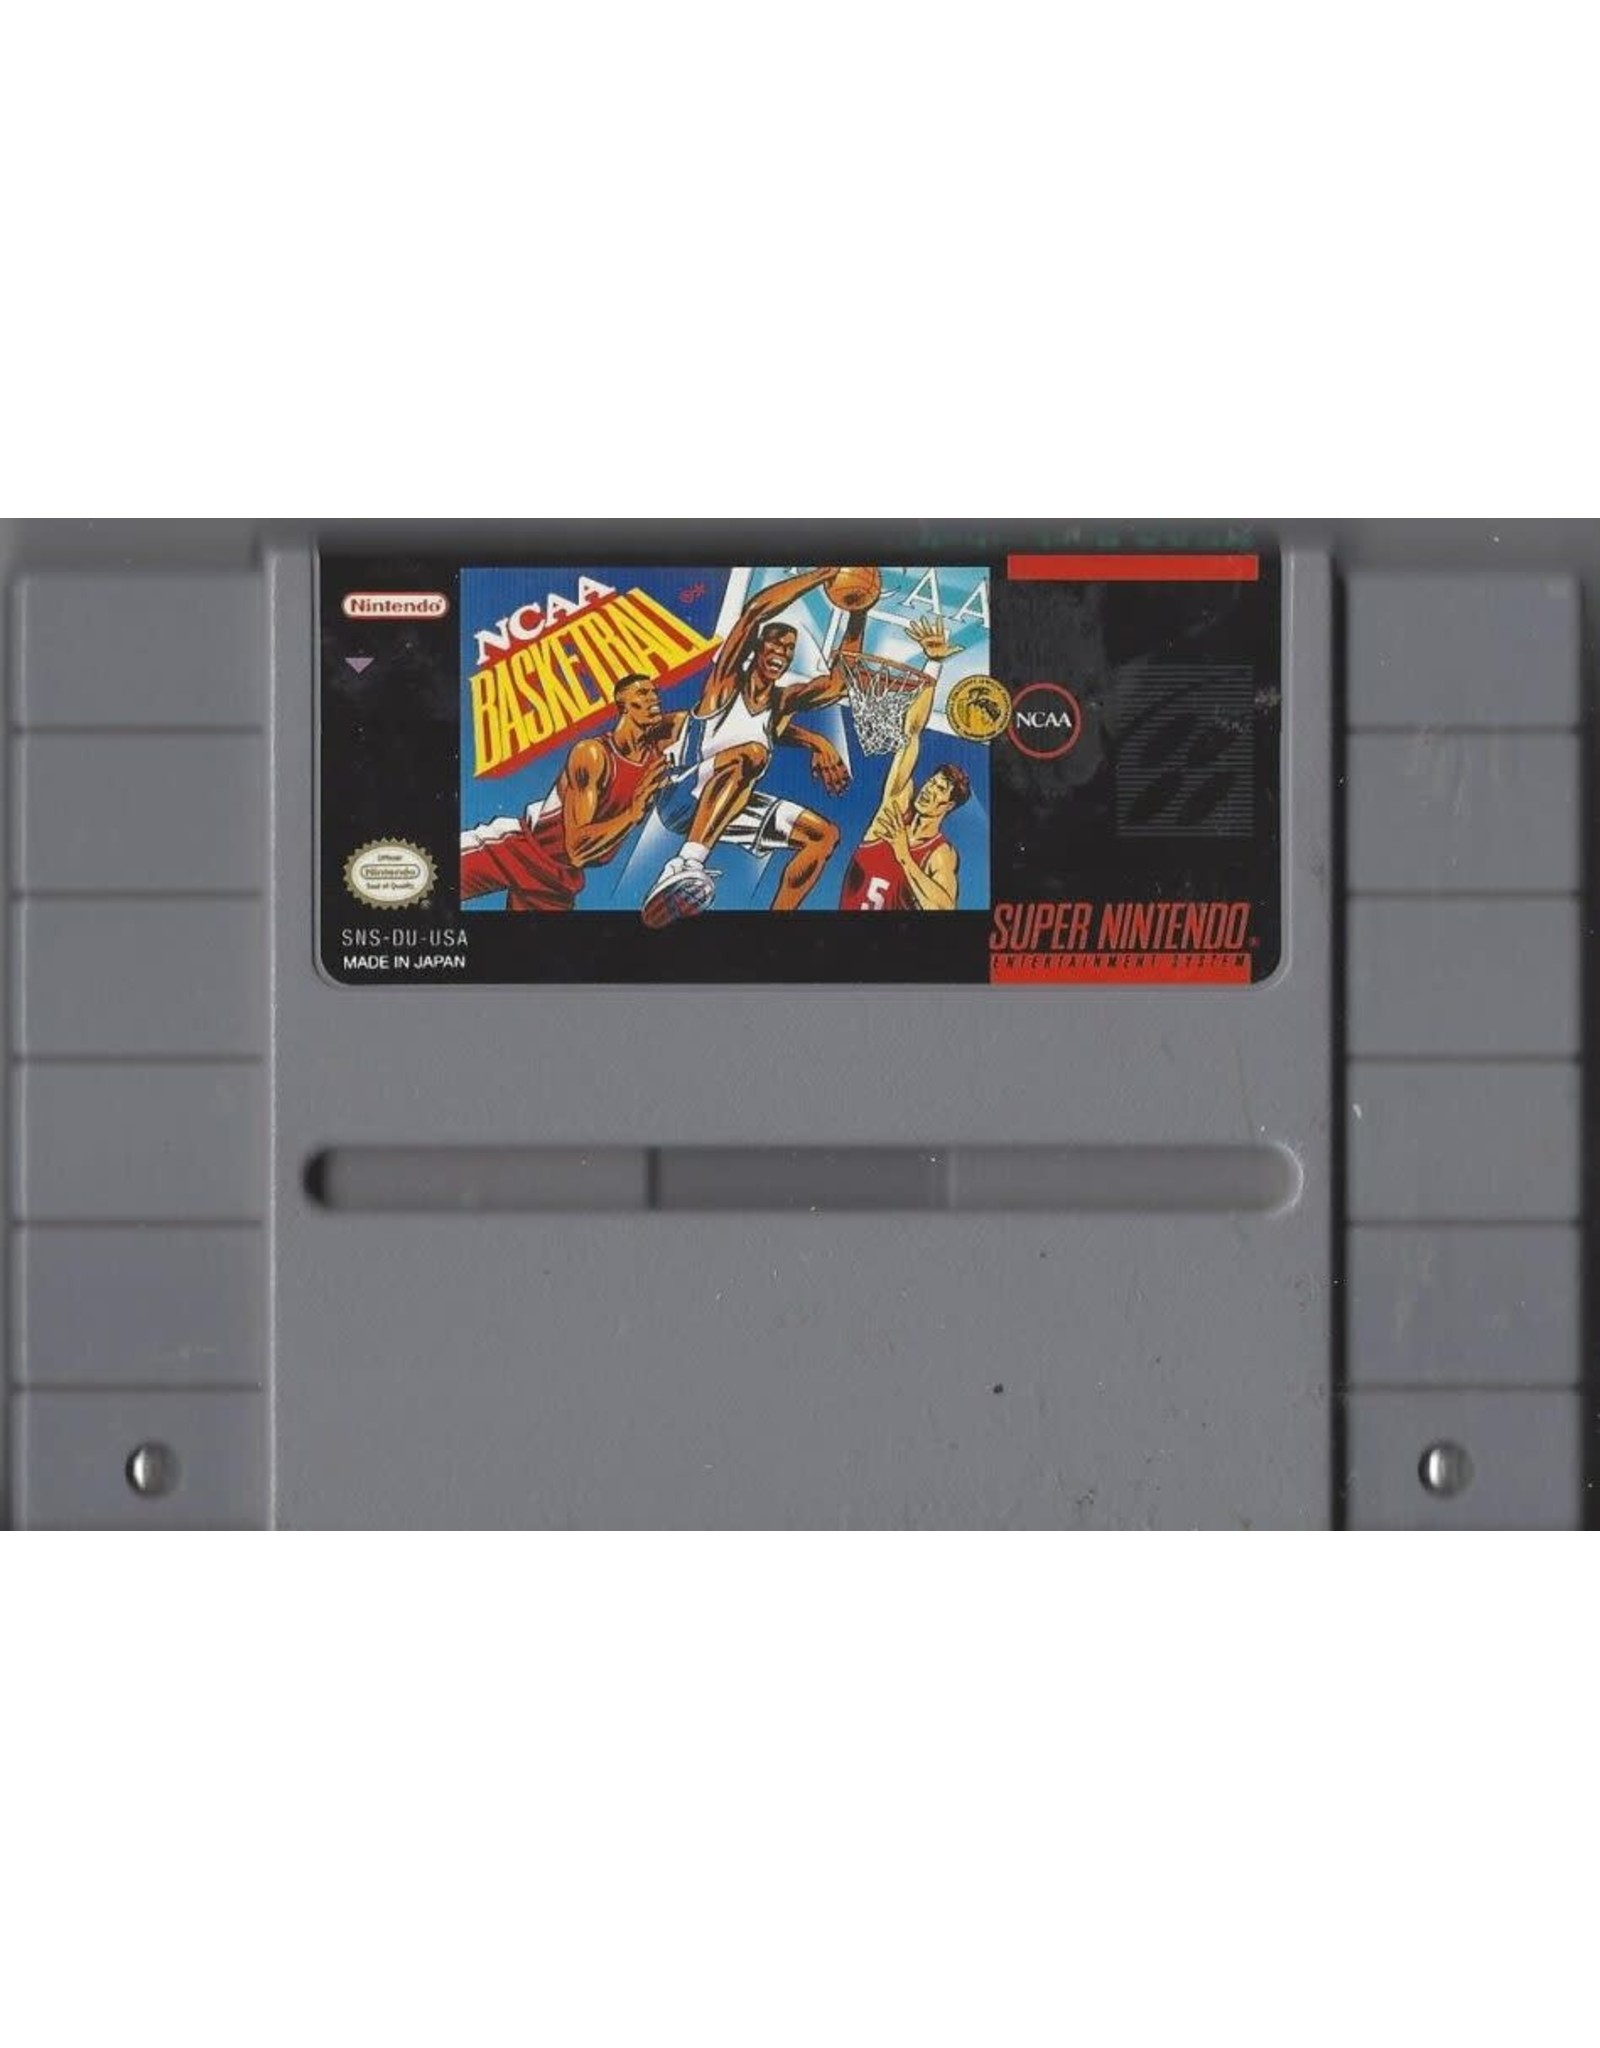 NCAA Basketball (SNES)